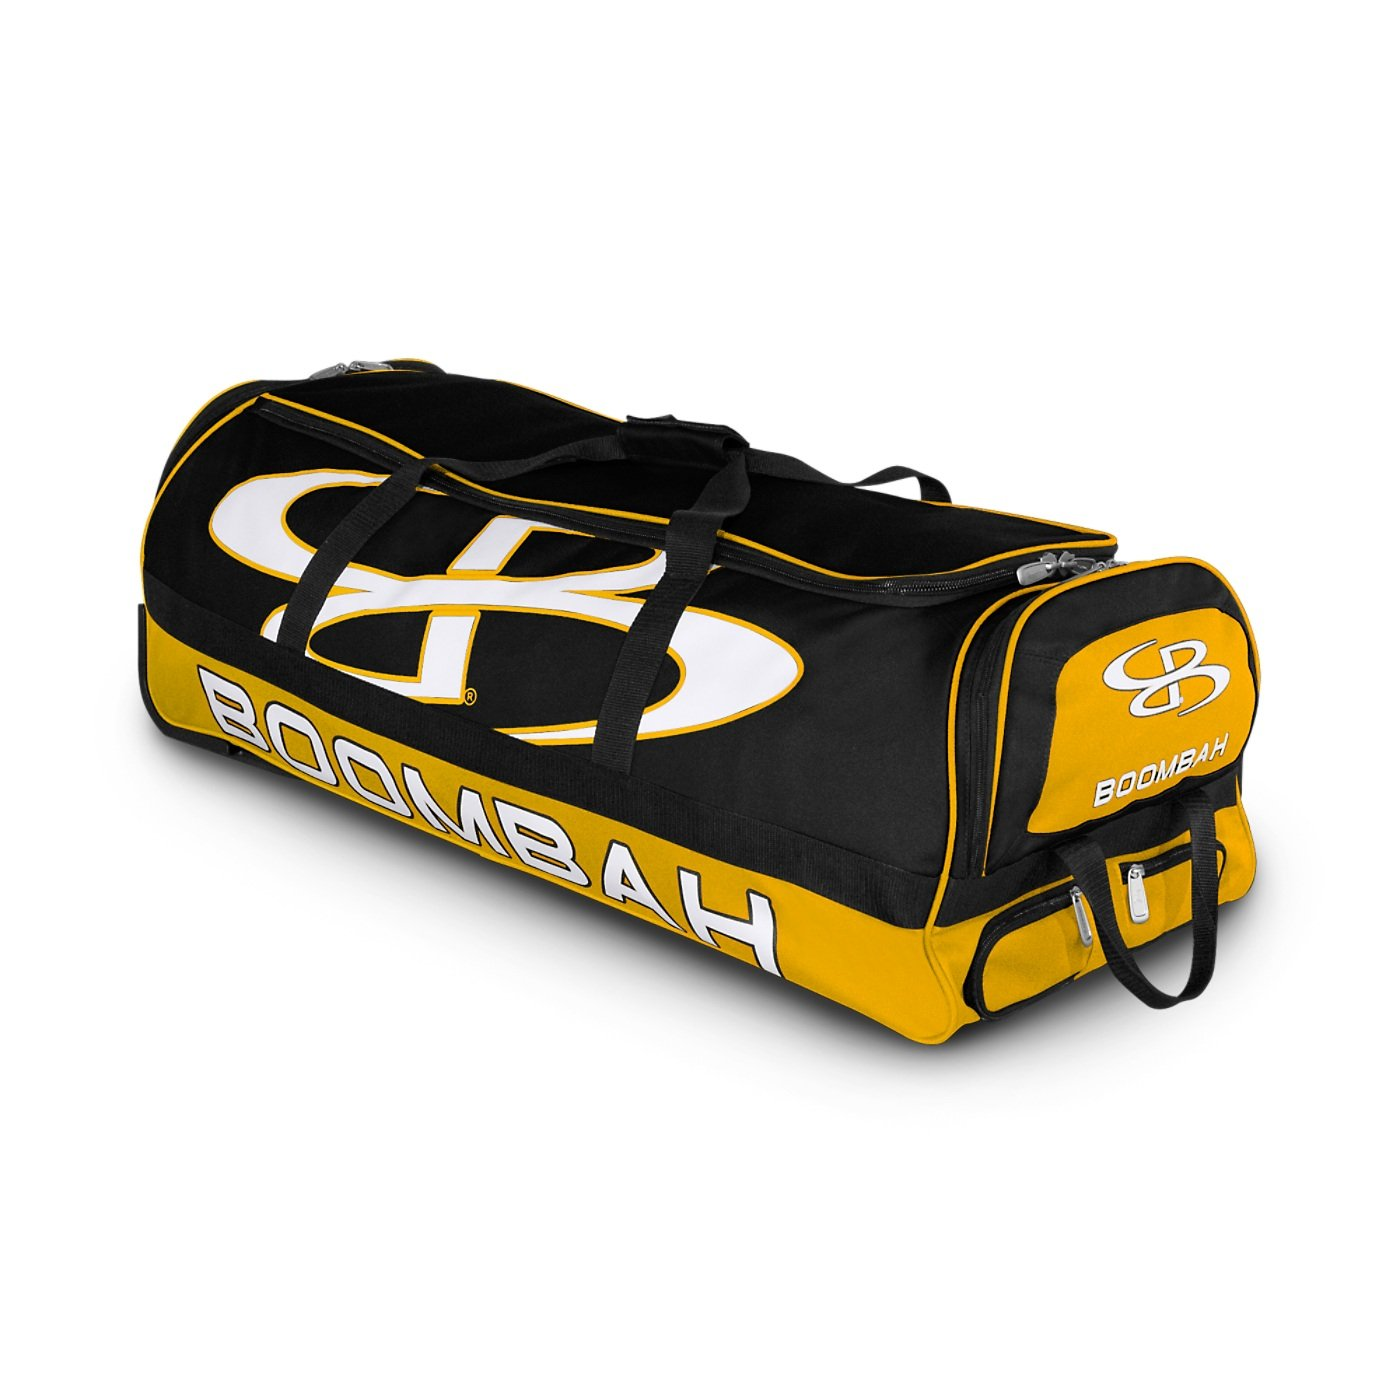 Boombah Brute Rolling Baseball/Softball Bat Bag - 35'' x 15'' x 12-1/2'' - Black/Gold - Holds 4 Bats and Room for Gear - Wheeled Bag